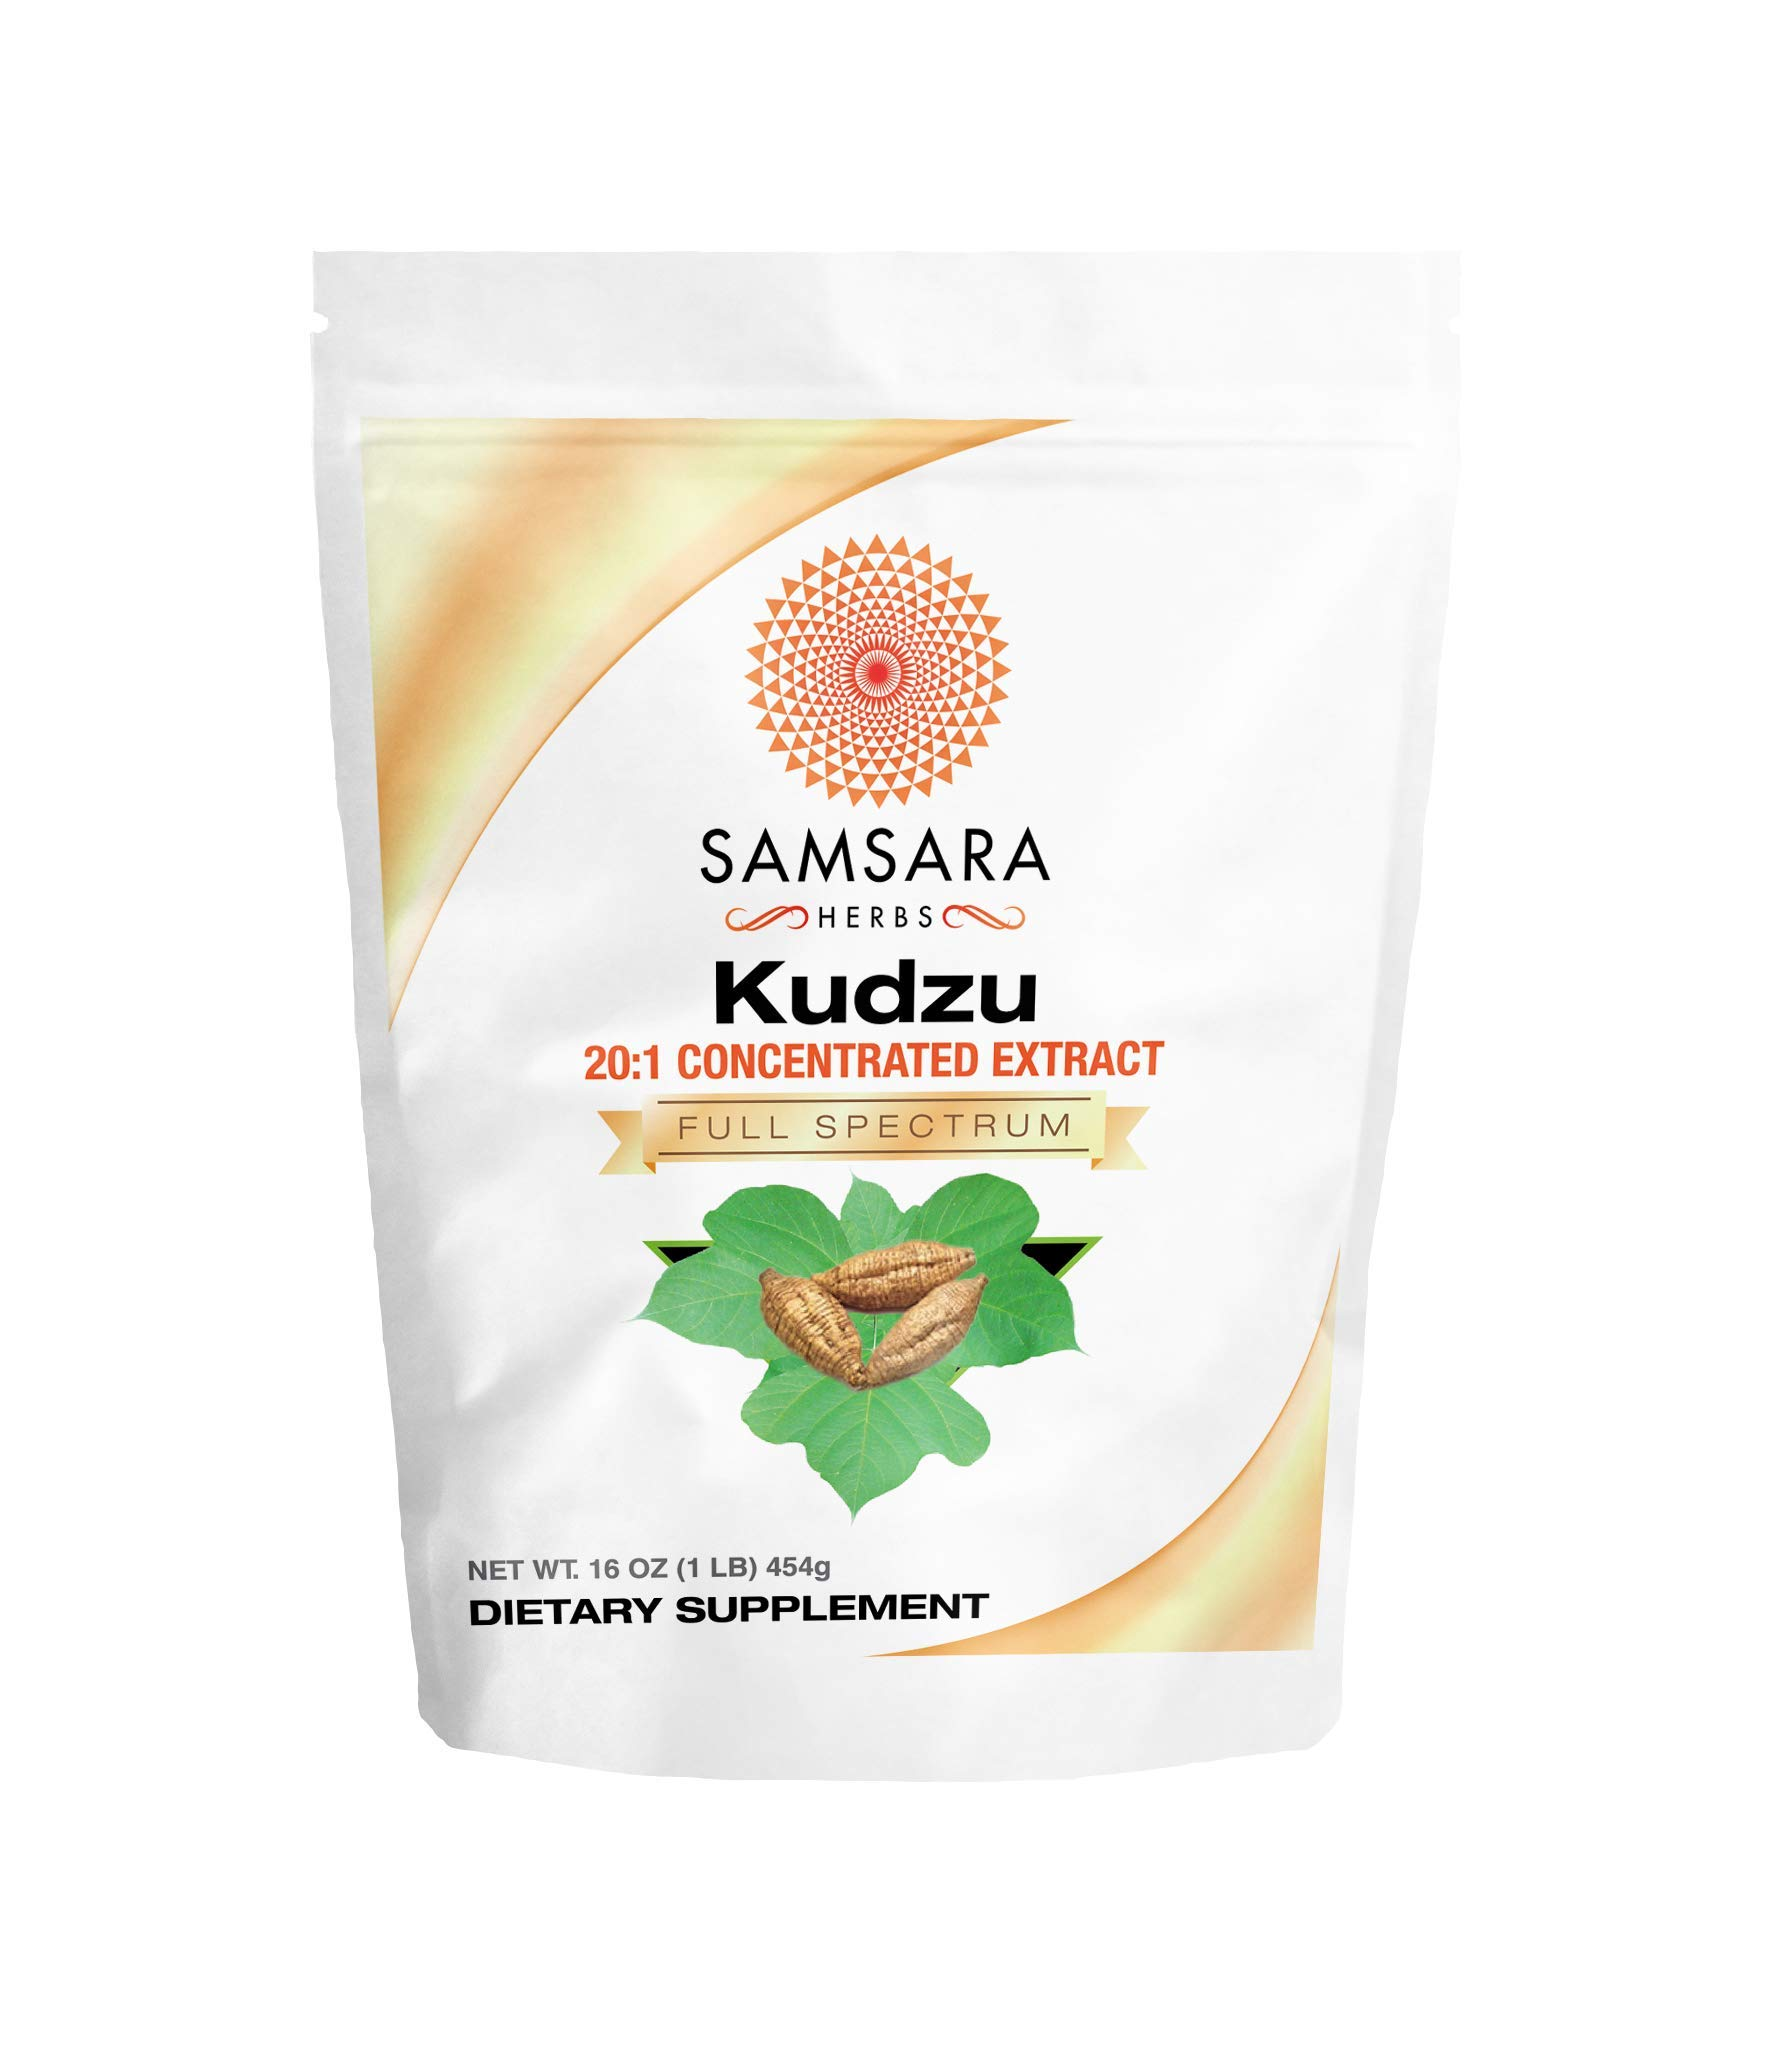 Samsara Herbs Kudzu Root Extract Powder (16oz/454g) 20:1 Concentrated Extract